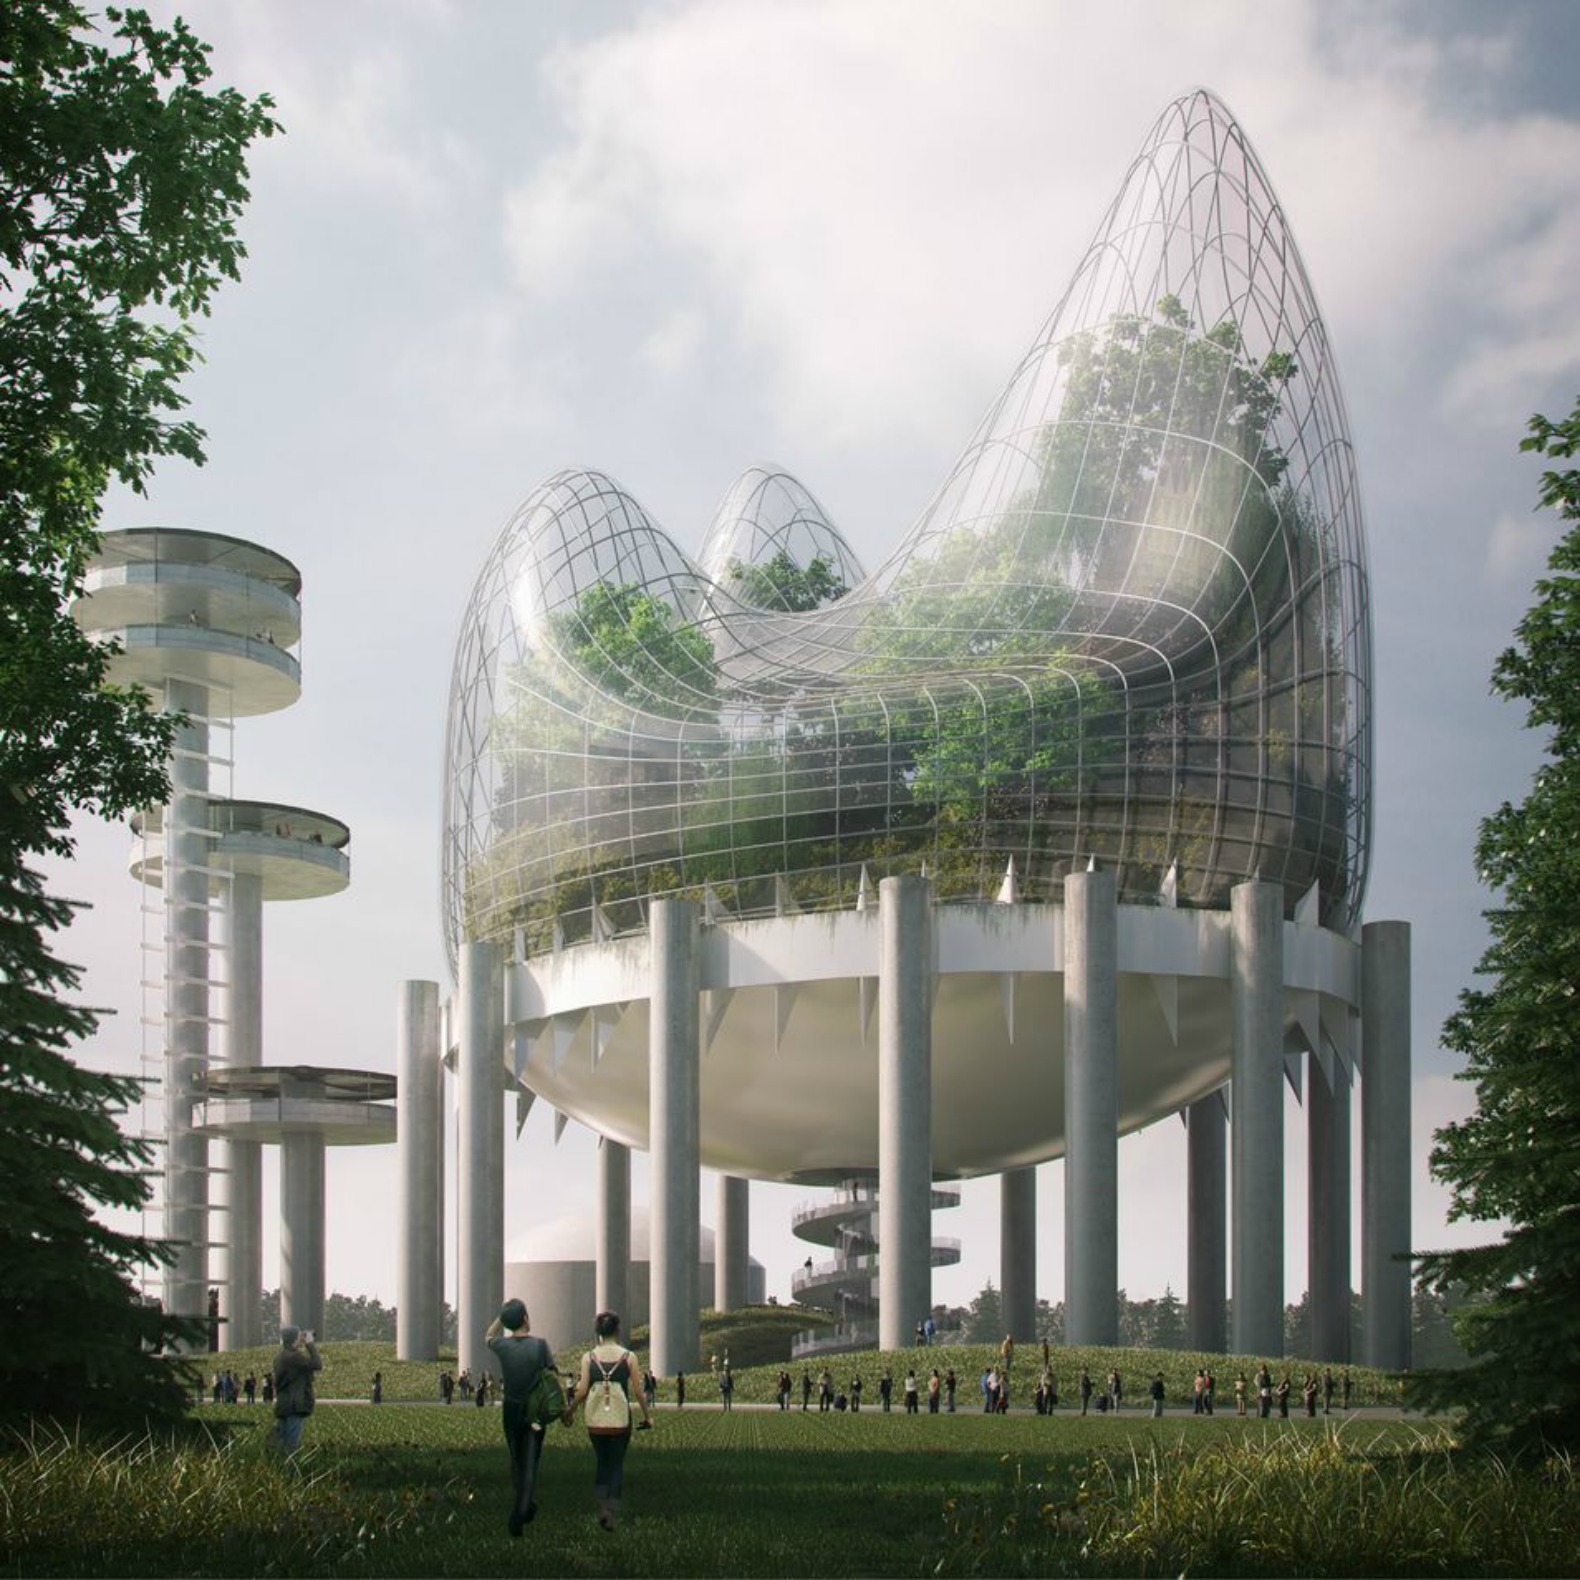 World's Fair Pavilion reimagined as a giant greenhouse blob atop Flushing Meadows Park